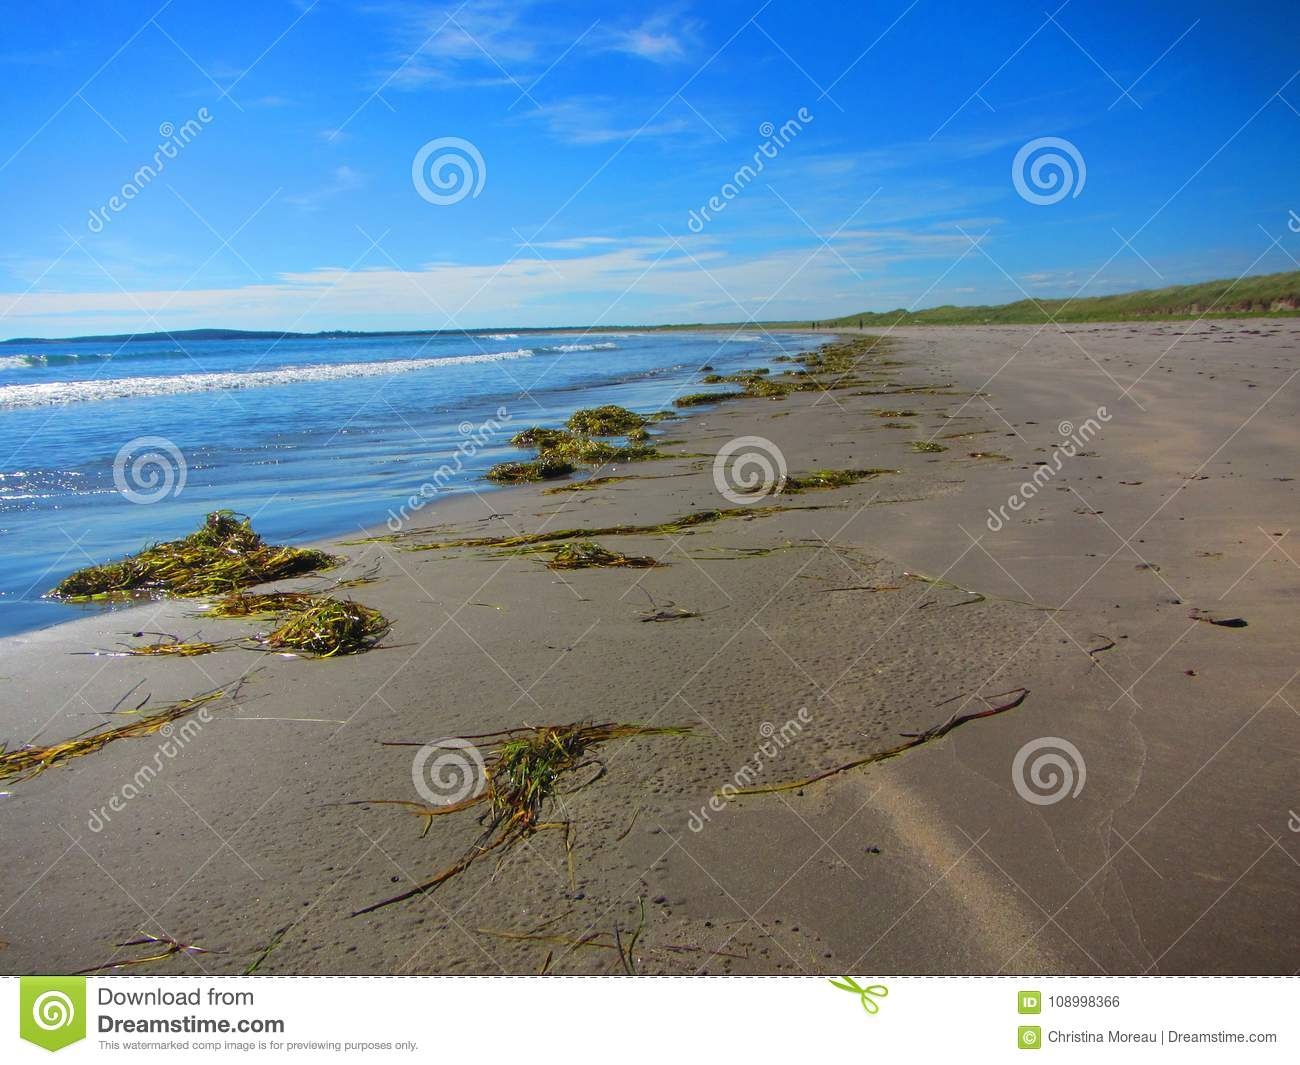 Waves Wash Onshore At A Beach Stock Photo - Image of compact